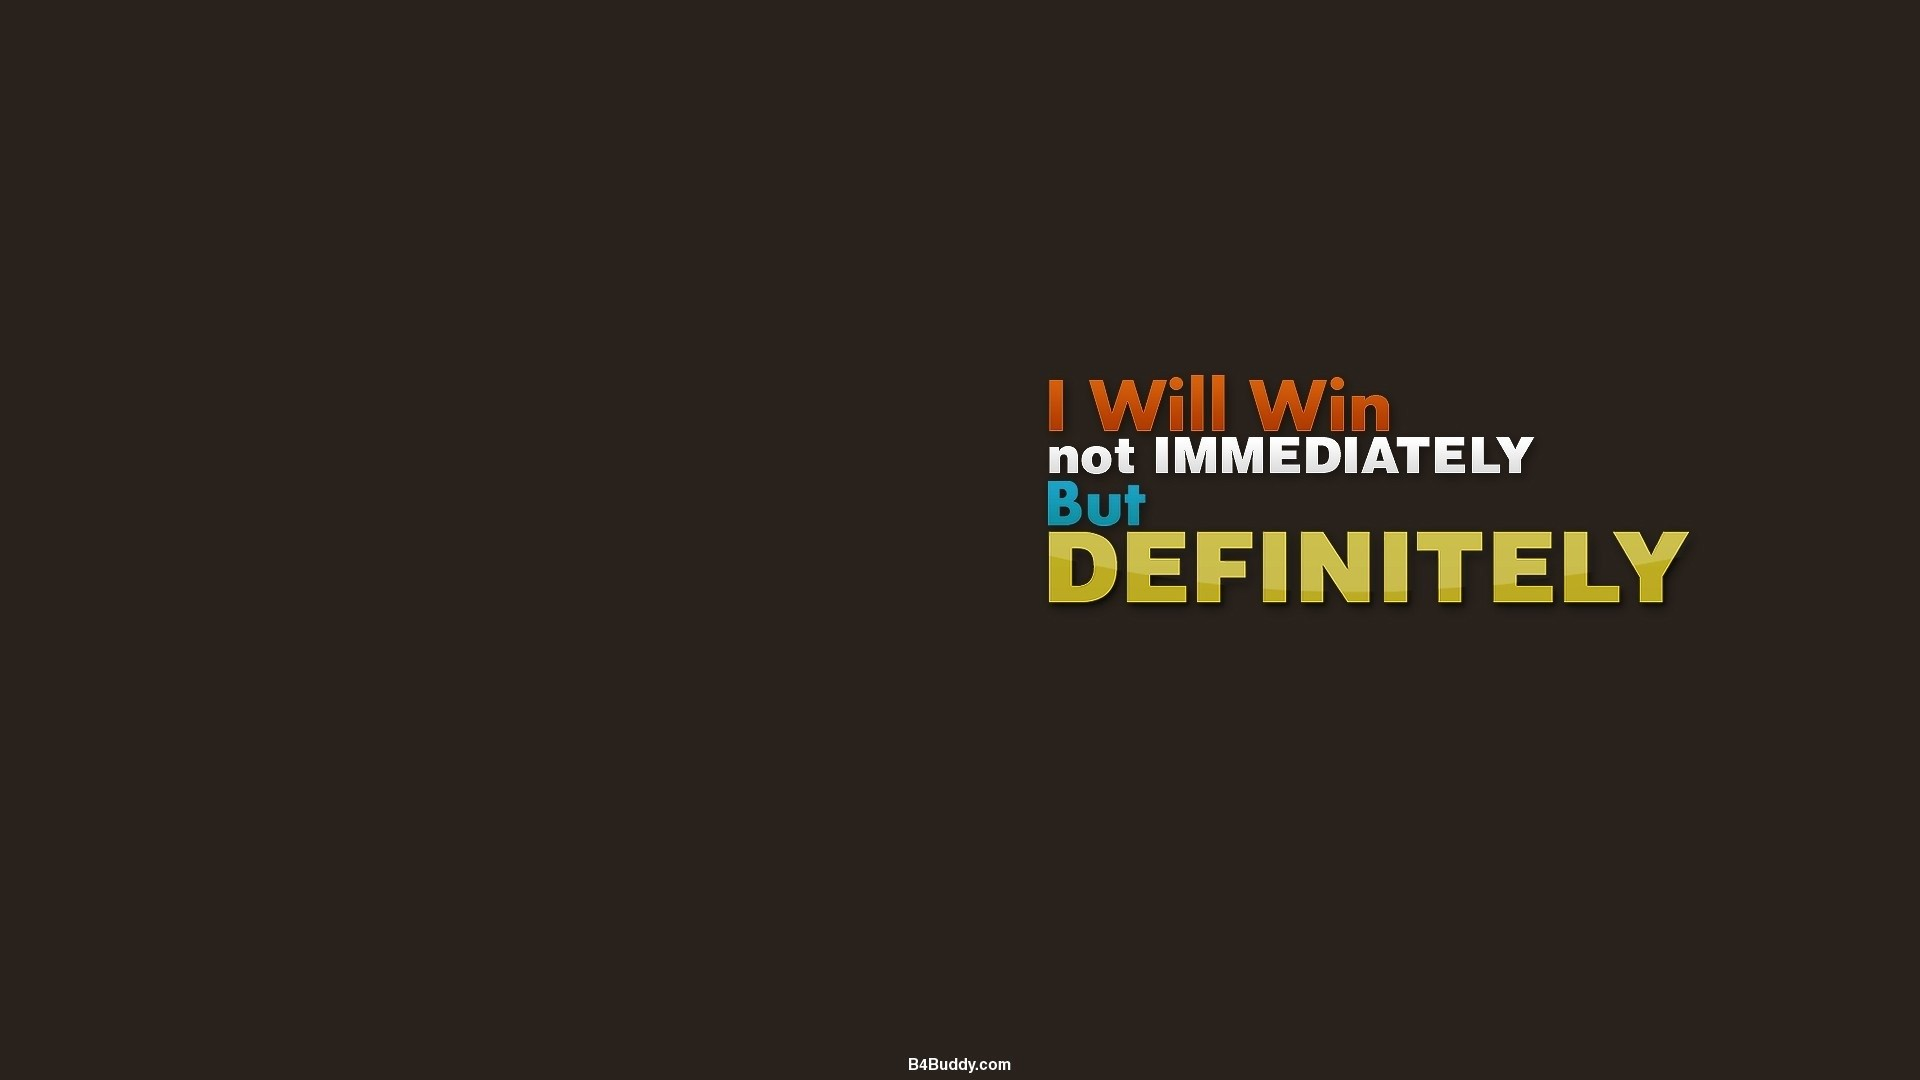 Nike Workout Quotes Wallpaper Nike motivational quotes